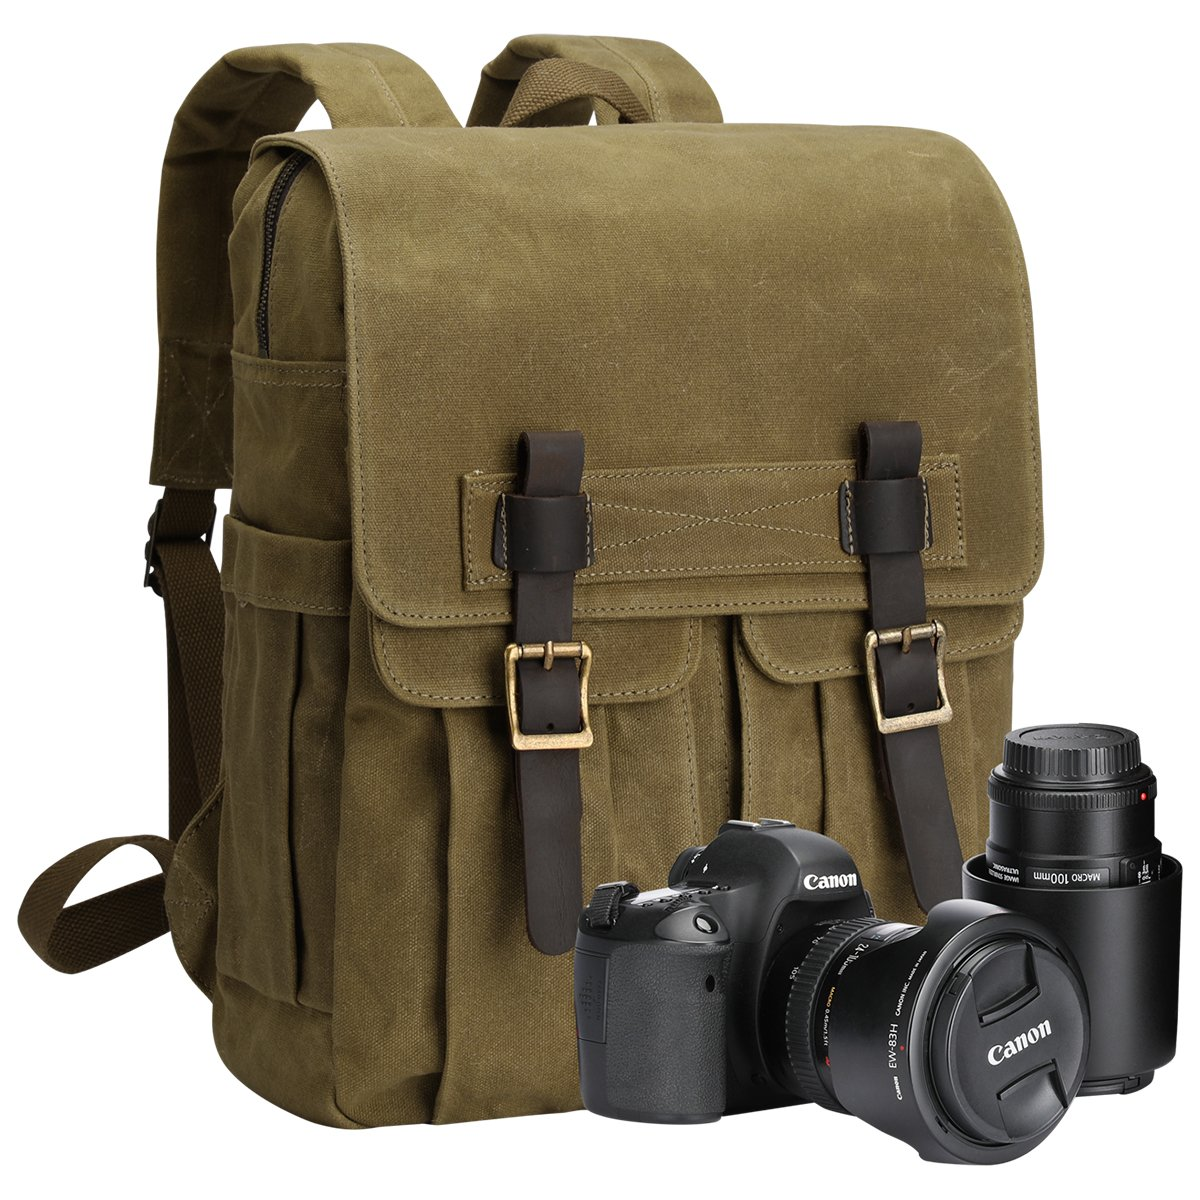 S-ZONE Waxed Canvas Waterproof Camera Backpack for DSLR/SLR Cameras, 15.6'' Laptops and Accessories